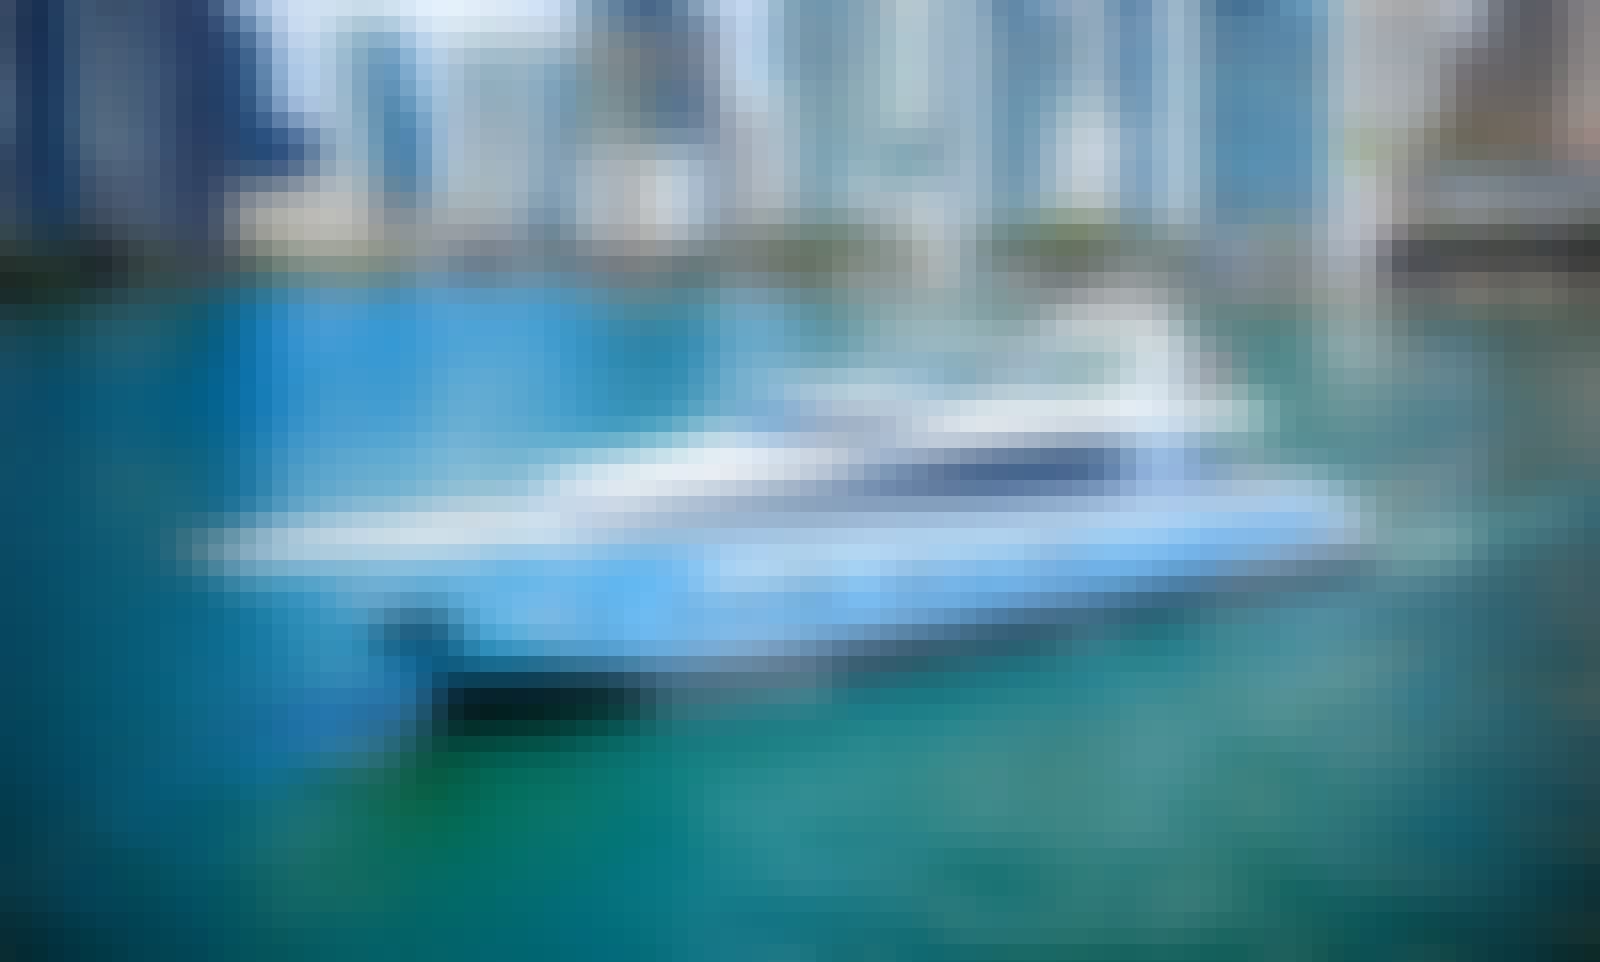 Rent a Luxury Yachting Experience! 103' Maiora - Miami Yacht Rentals + Florida Keys & The Bahamas